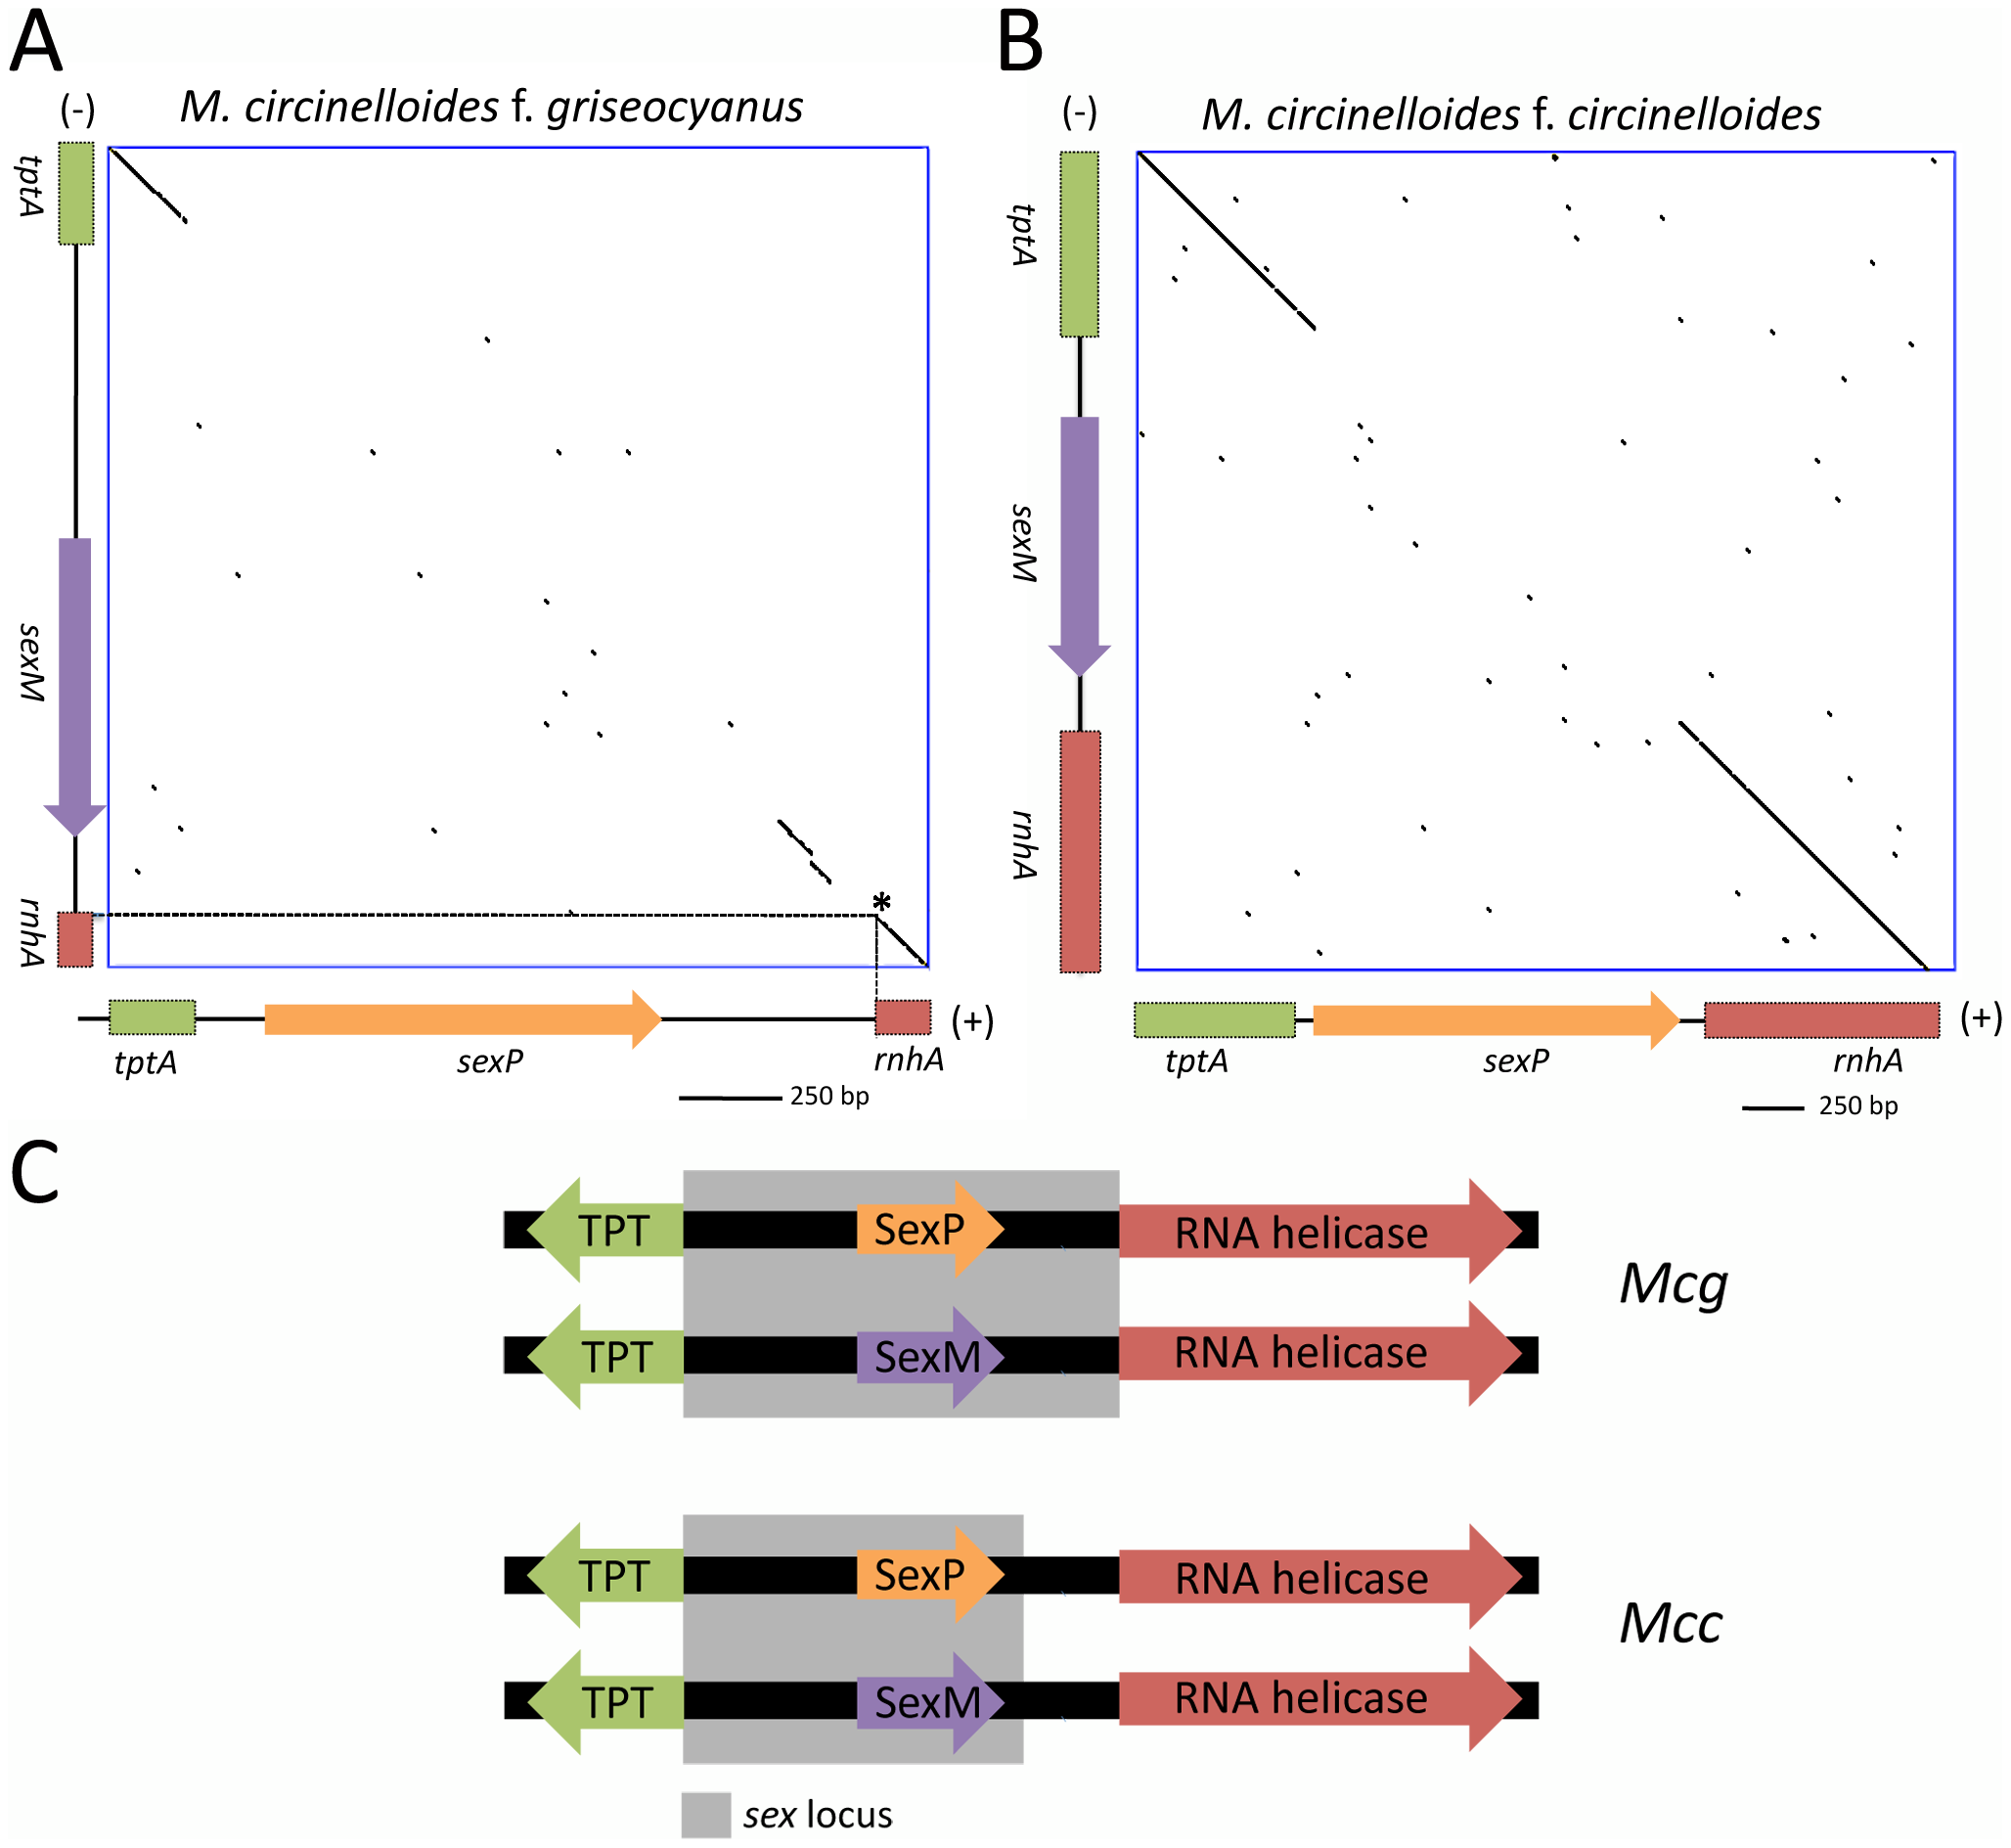 Defining the (+) and (−) <i>sex</i> locus alleles in <i>M. circinelloides</i> f. <i>griseocyanus</i> and <i>Mucor circinelloides</i> f. <i>circinelloides</i>.